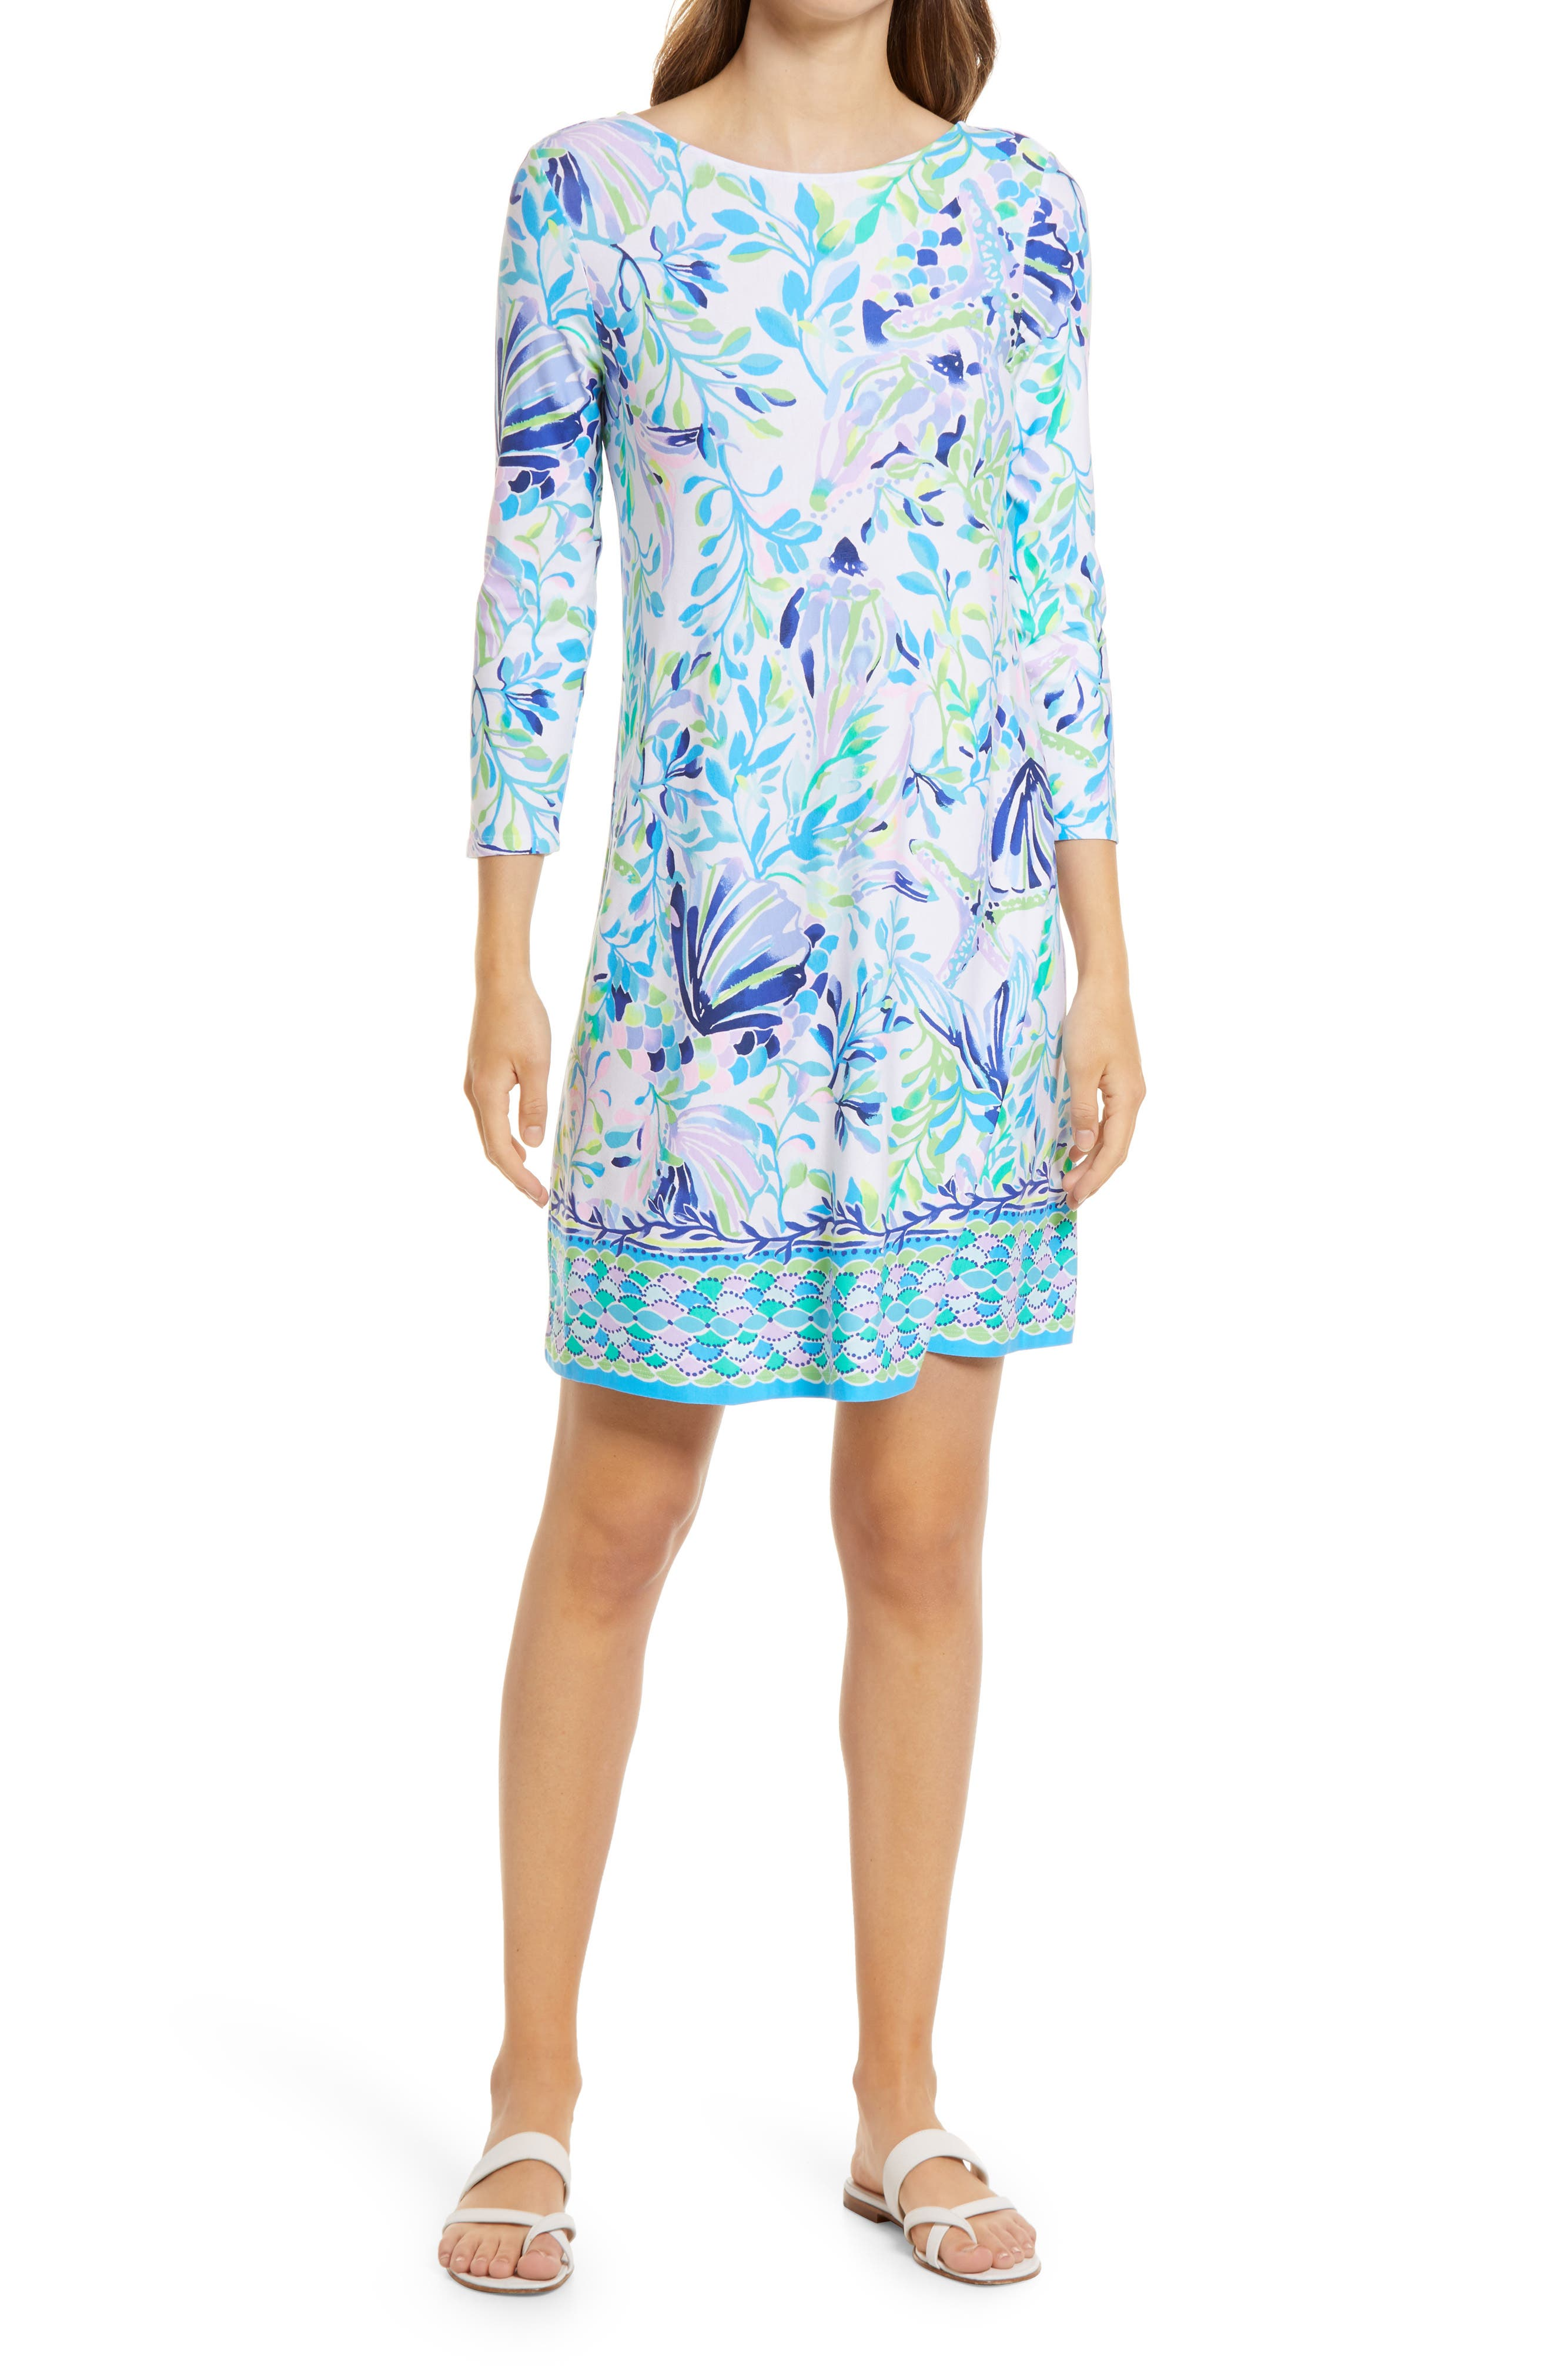 Women's Lilly Pulitzer Ophelia Floral Long Sleeve Knit Dress